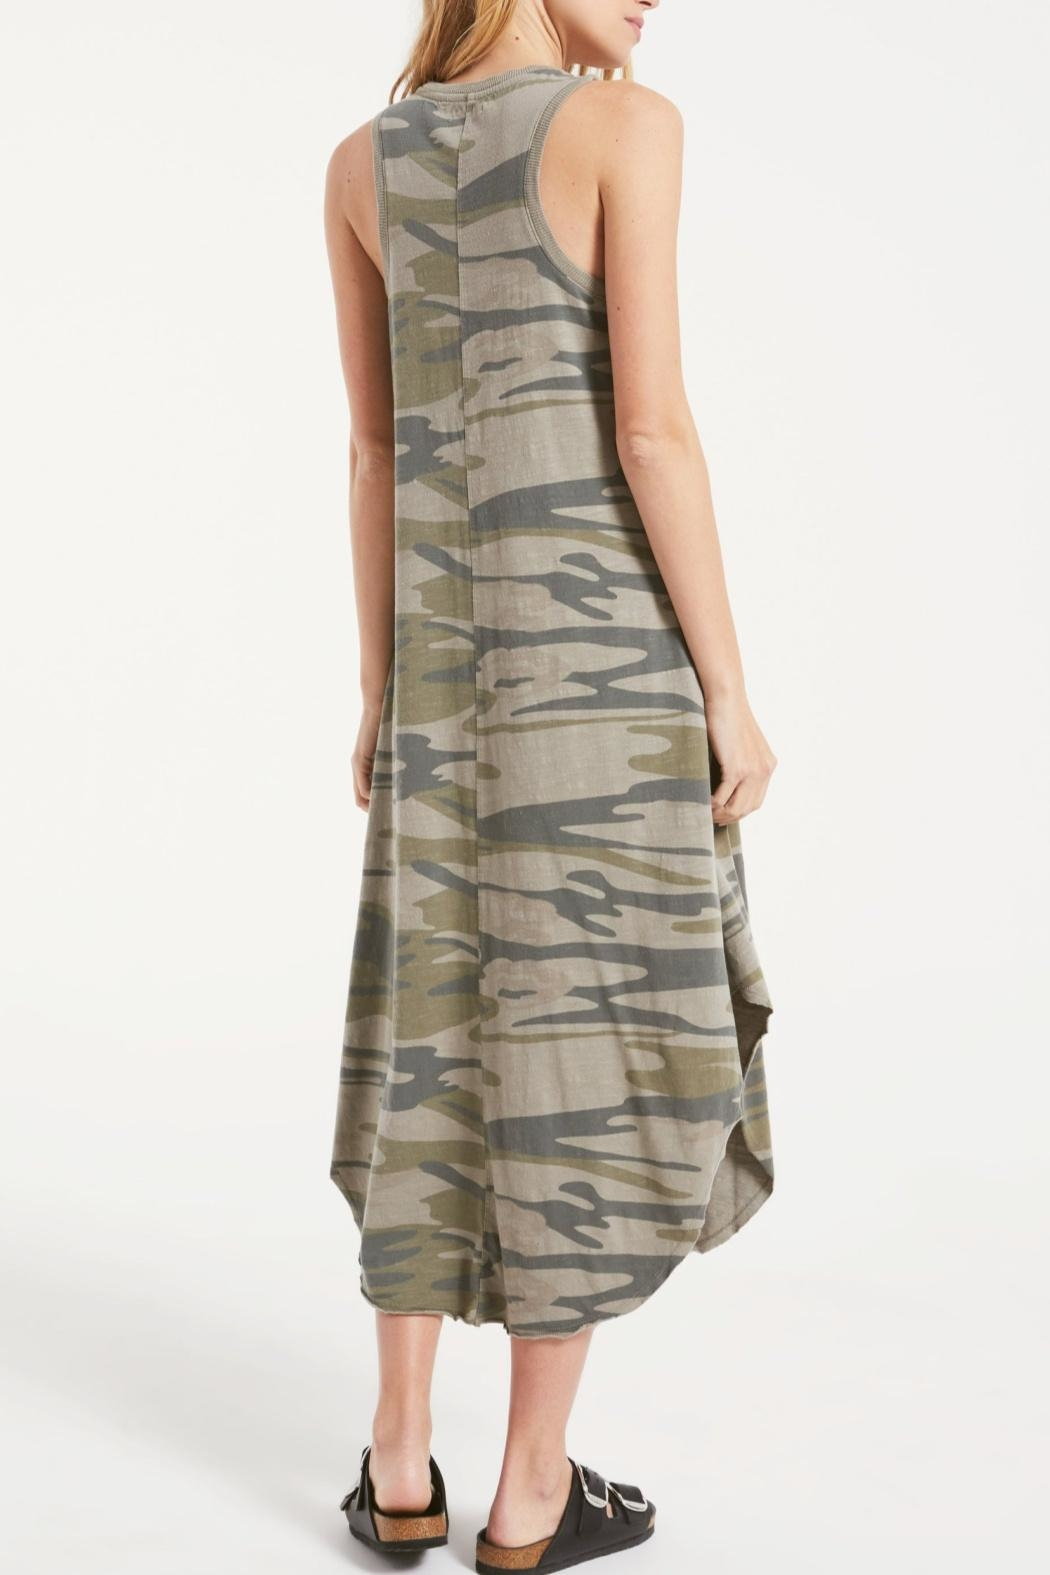 z supply Camo Riverie Dress - Side Cropped Image